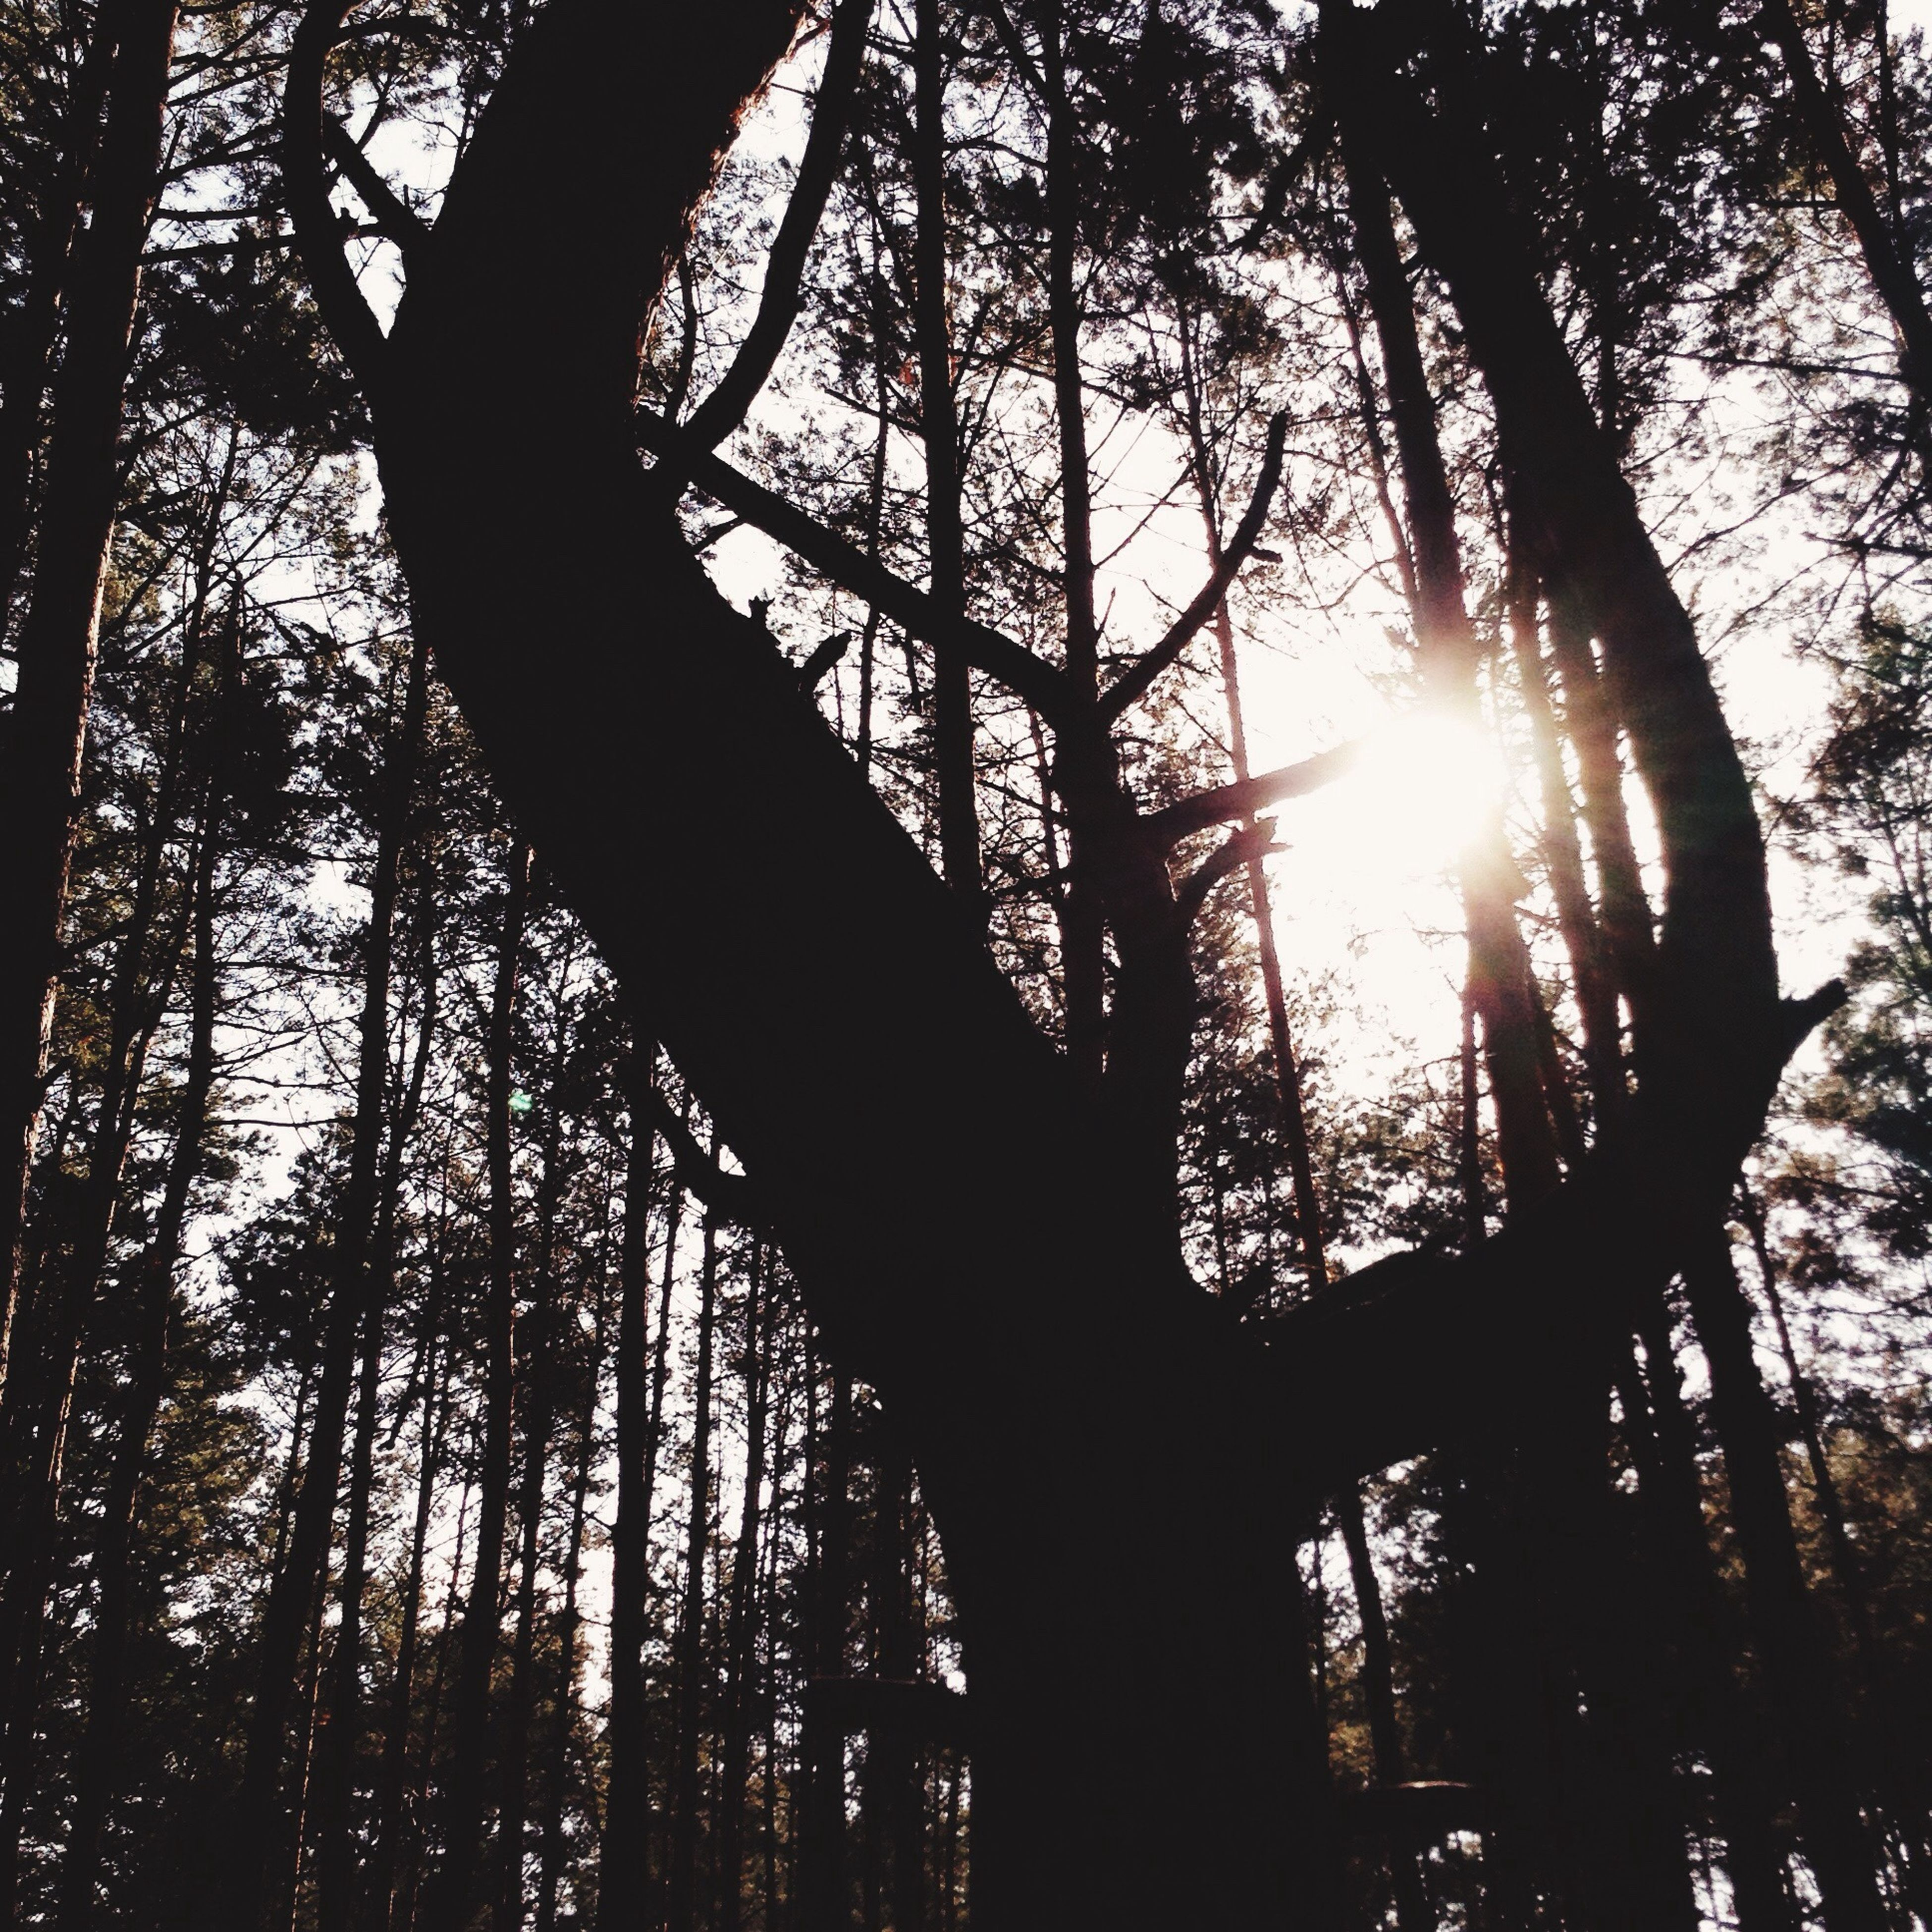 tree, sun, sunbeam, low angle view, sunlight, lens flare, branch, tranquility, tree trunk, growth, nature, silhouette, back lit, beauty in nature, sky, forest, bright, tranquil scene, scenics, streaming